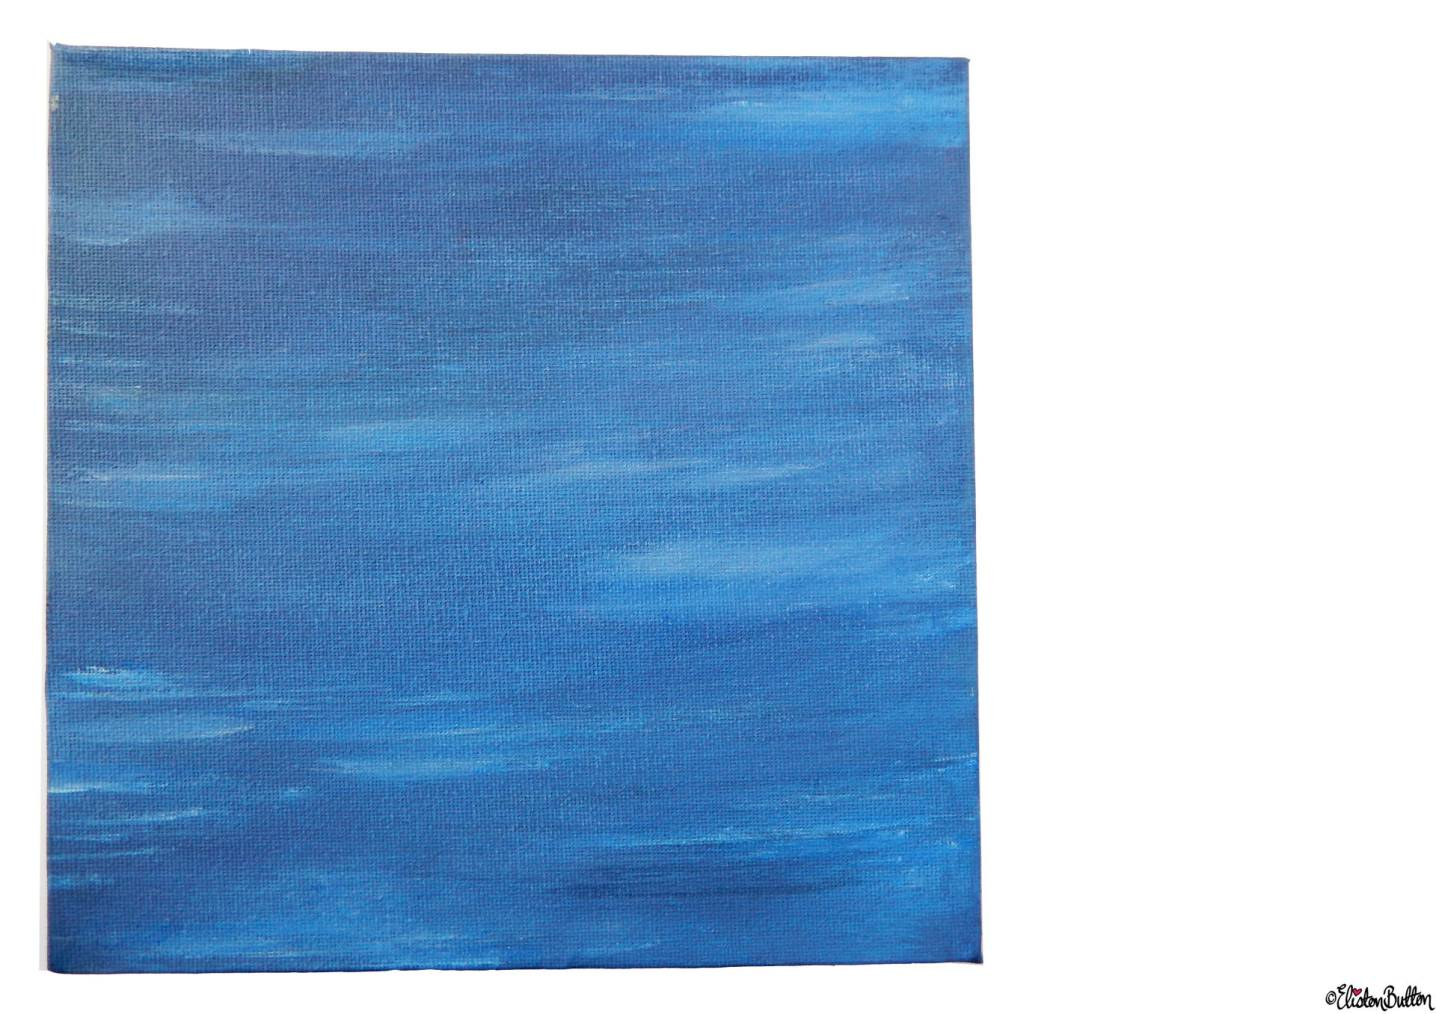 Calm Waters Painted Canvas by Eliston Button - About Me at www.elistonbutton.com - Eliston Button - That Crafty Kid – Art, Design, Craft & Adventure.